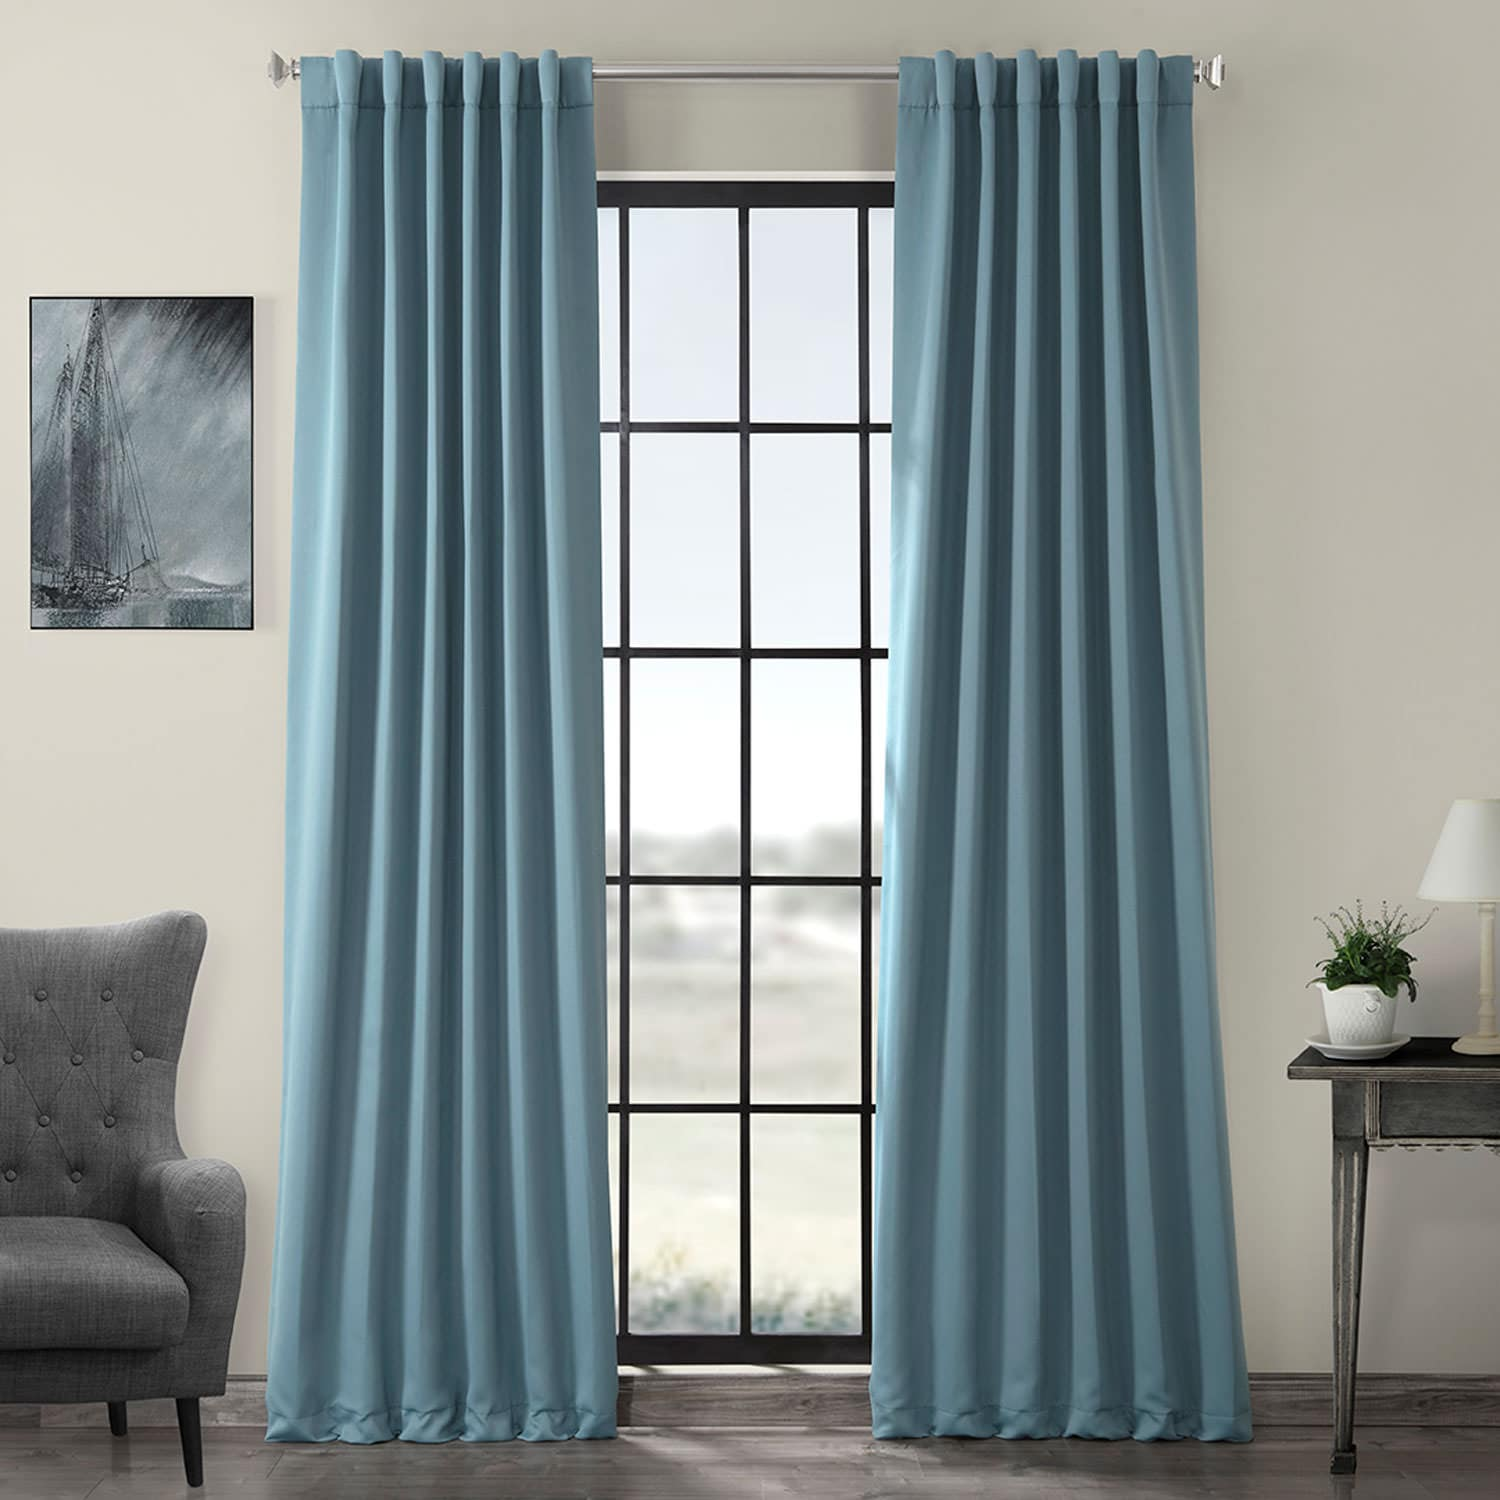 Teal Blackout Curtains Dragonfly Teal Blackout Curtain